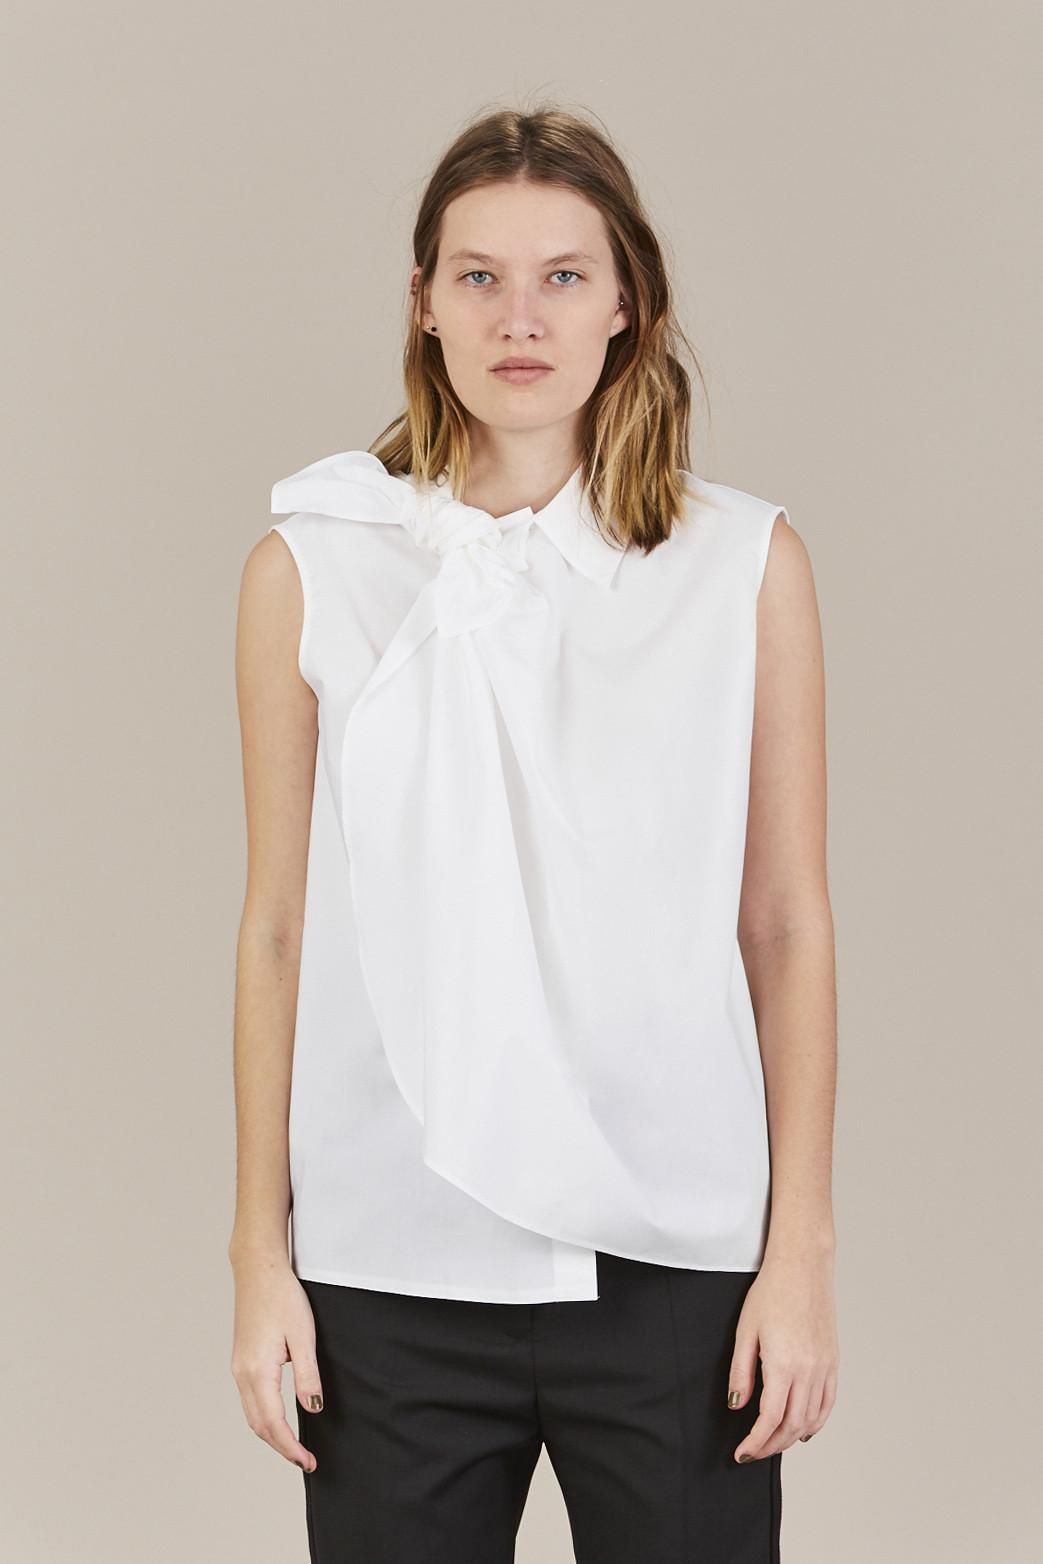 knot collar sleeveless top - Blue Maison Martin Margiela 100% Guaranteed For Sale Cheap Sale Popular Shopping Clearance Online Outlet Store Cheap Price AegCx